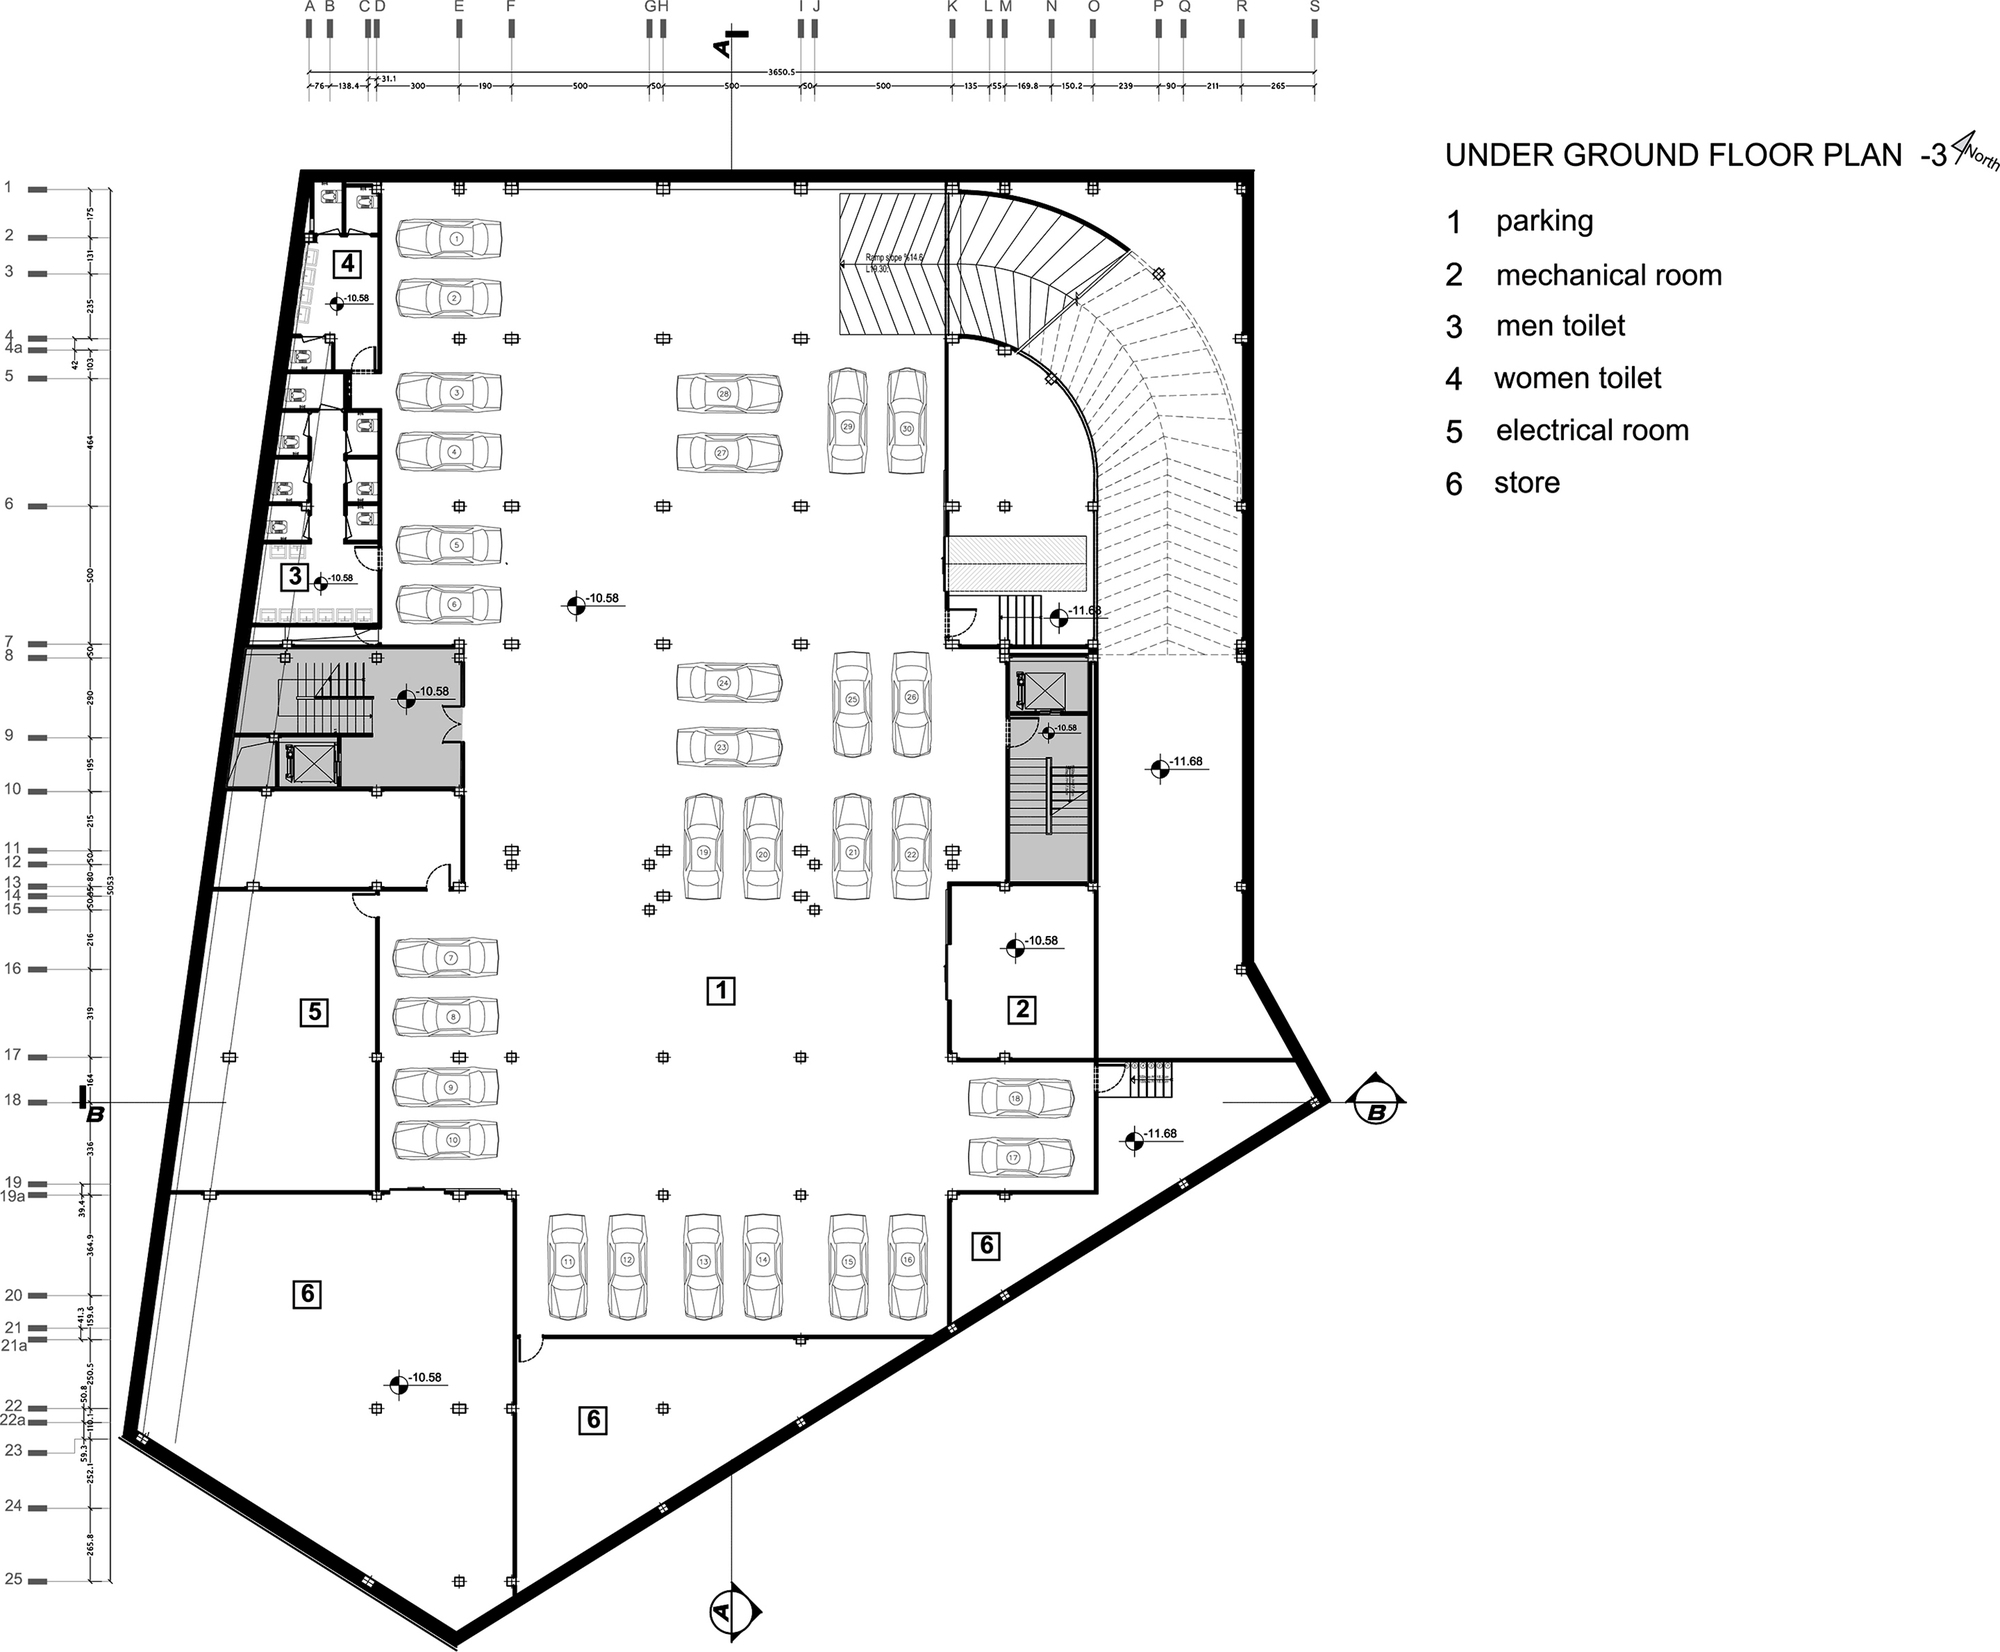 Noise Control likewise 1509 Square Feet 3 Bedrooms 2 Bathroom Cottage House Plans 2 Garage 28803 additionally No P Trap For New Shower Contractor Says Ok as well How To Read Plans together with Two Story House Plans With 6 Bedrooms Inspirational 2 Story 3 Bedroom House Plans Small Two Story House Plan. on underground house floor plans